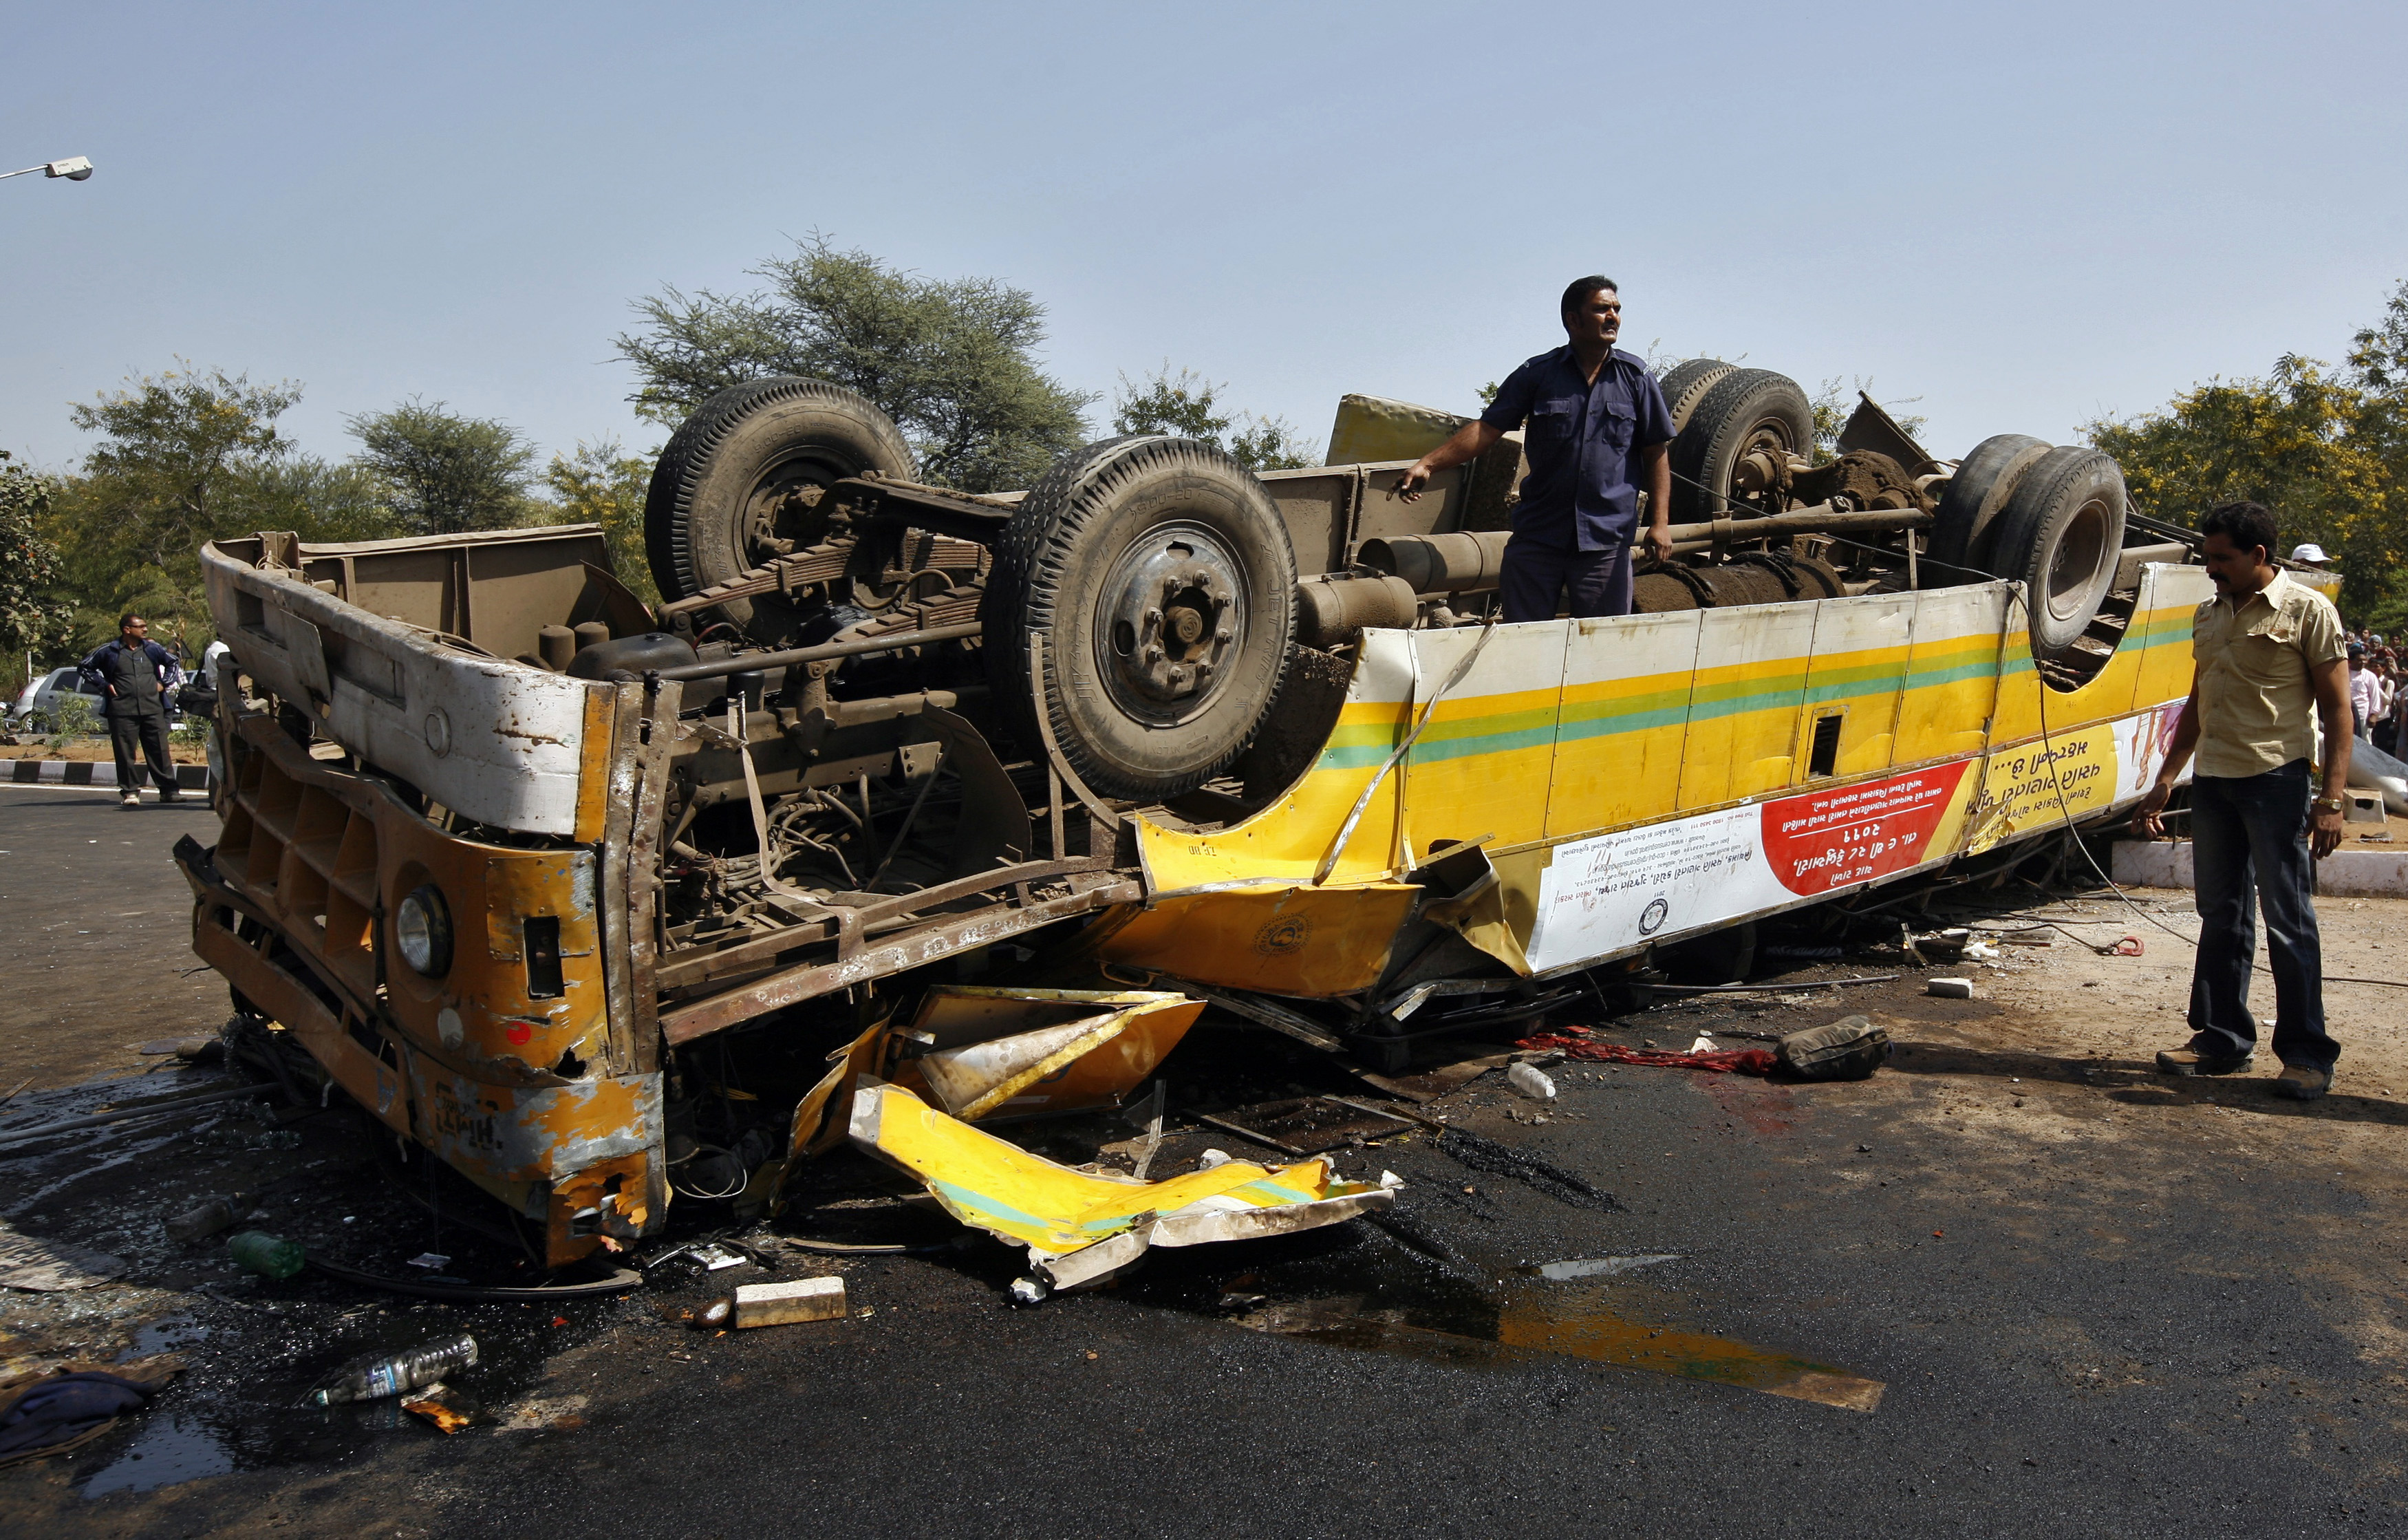 A rescue worker from the Gujarat State Disaster Management Authority (GSDMA) stands on an overturned damaged passenger bus after an accident at Gandhinagar in the western Indian state of Gujarat February 11, 2011. At least two people died and 13 others were injured after the passenger bus they were travelling in collided with a truck, police said on Friday. REUTERS/Amit Dave (INDIA - Tags: DISASTER TRANSPORT) - RTXXQ26